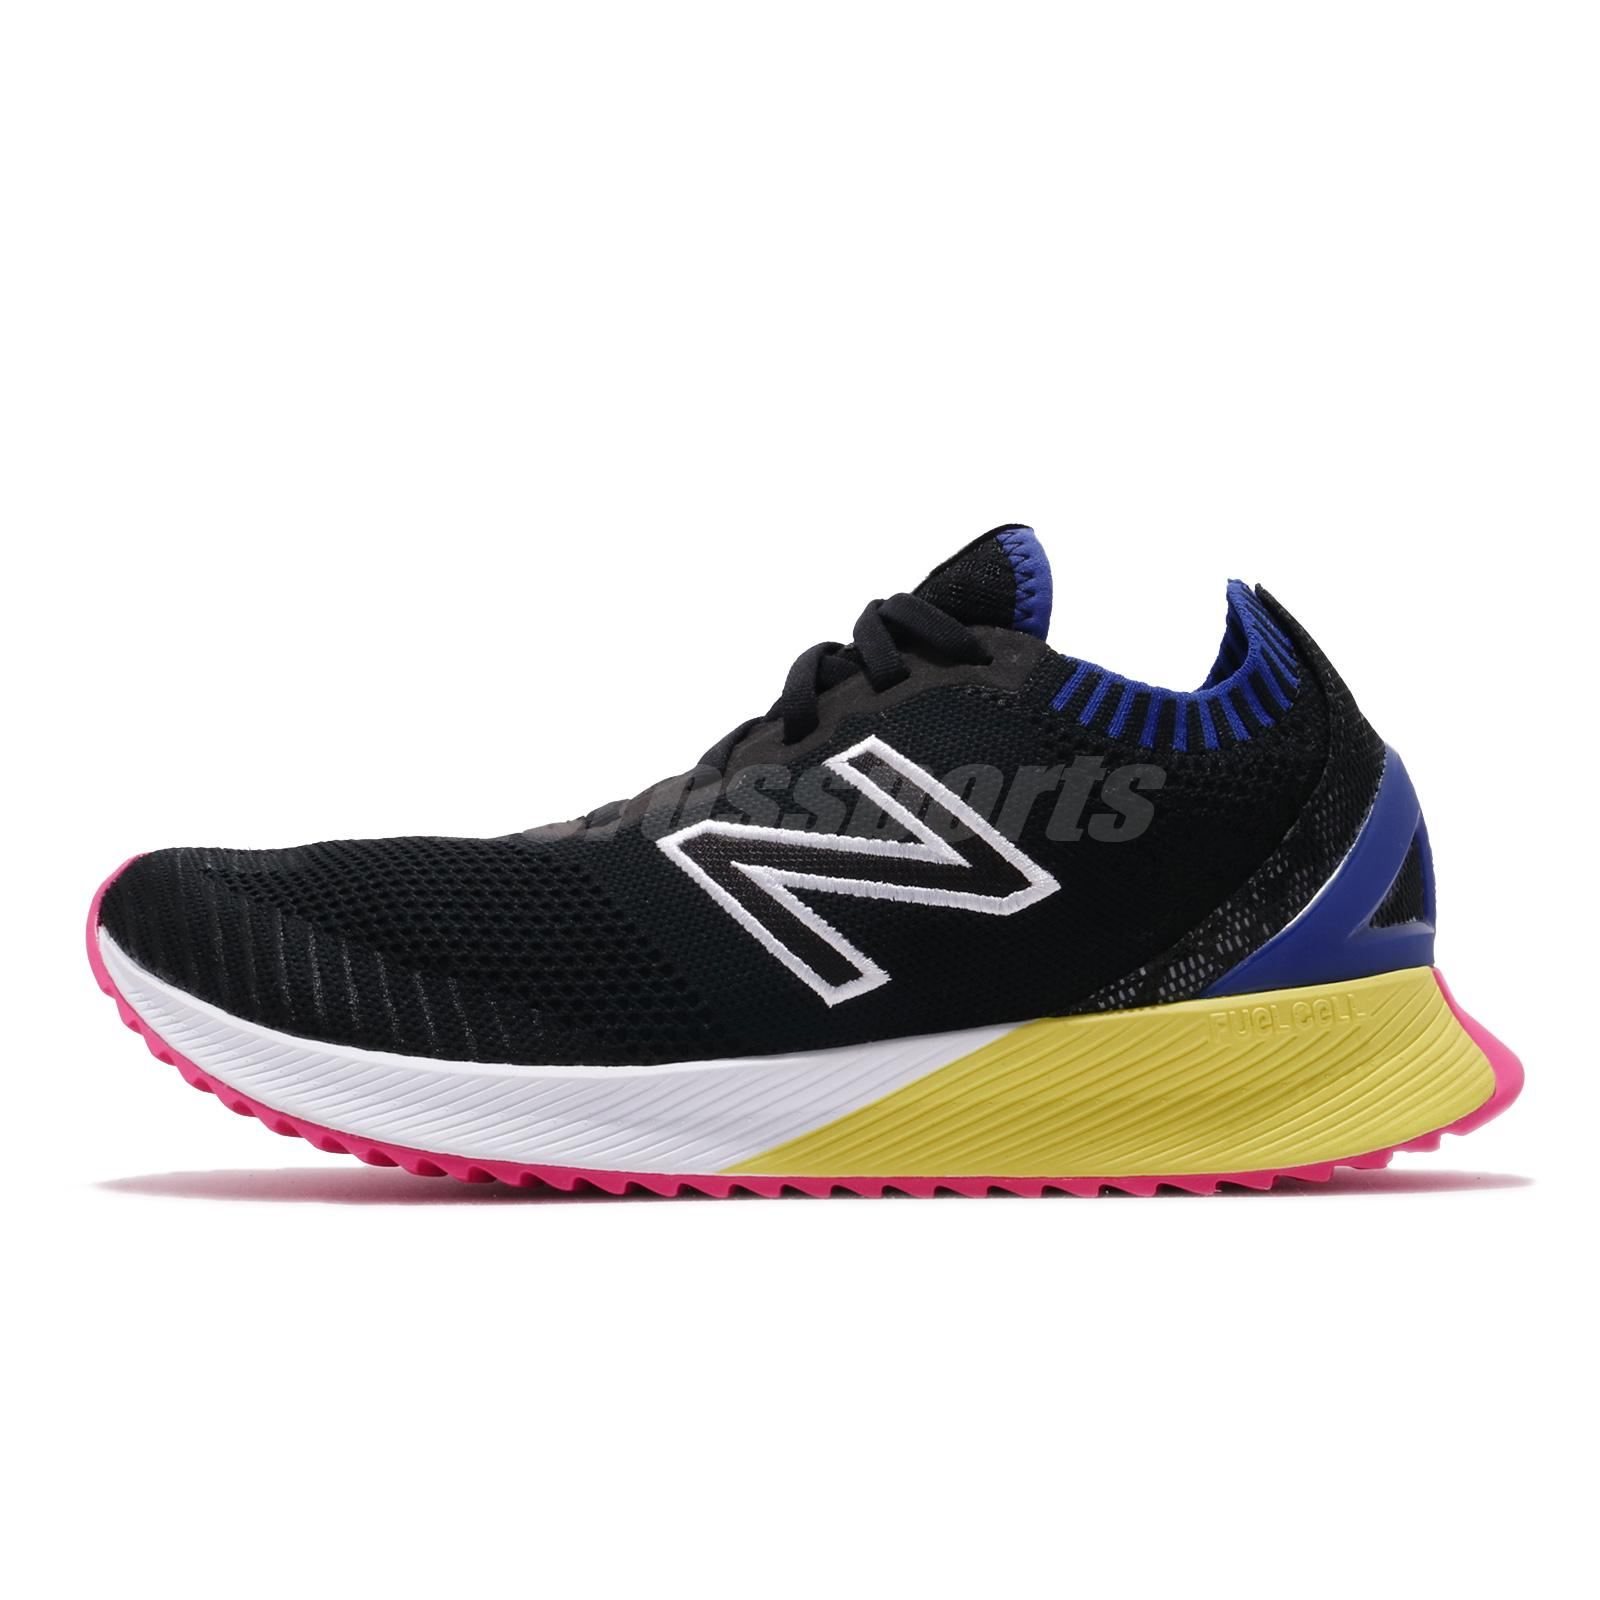 new balance fuelcell echo uomo